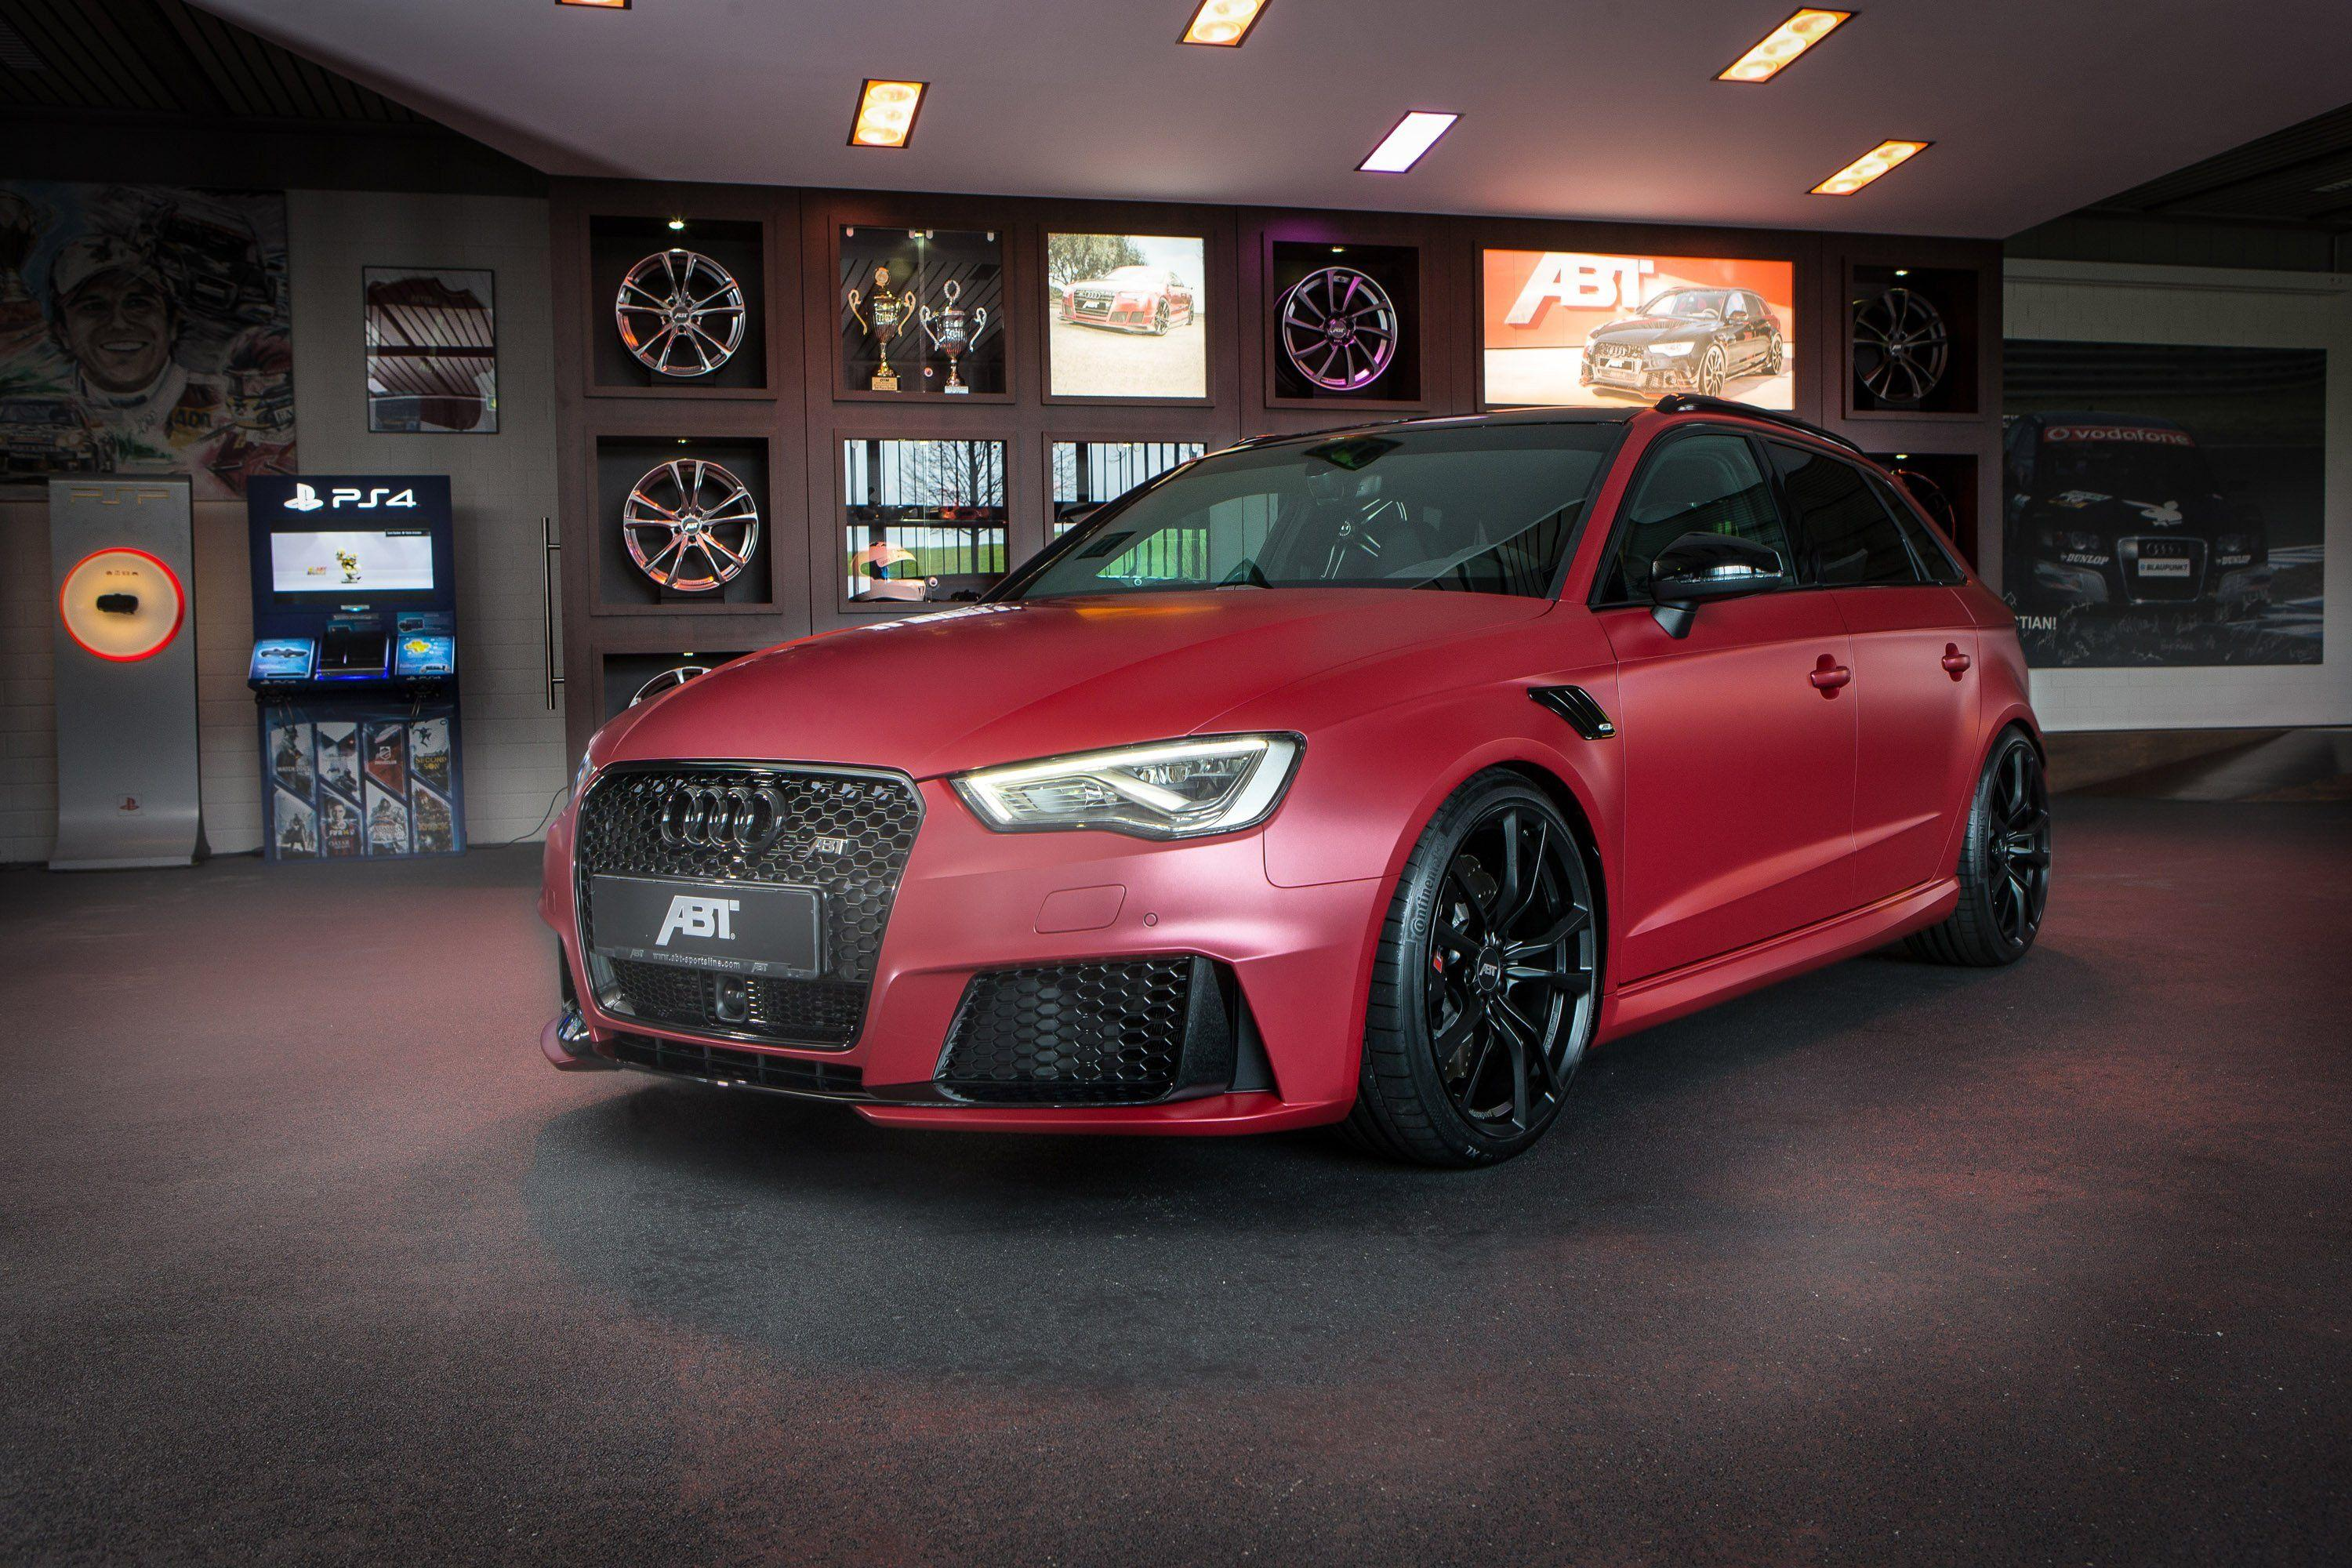 ABT sportback cars Audi RS3 Tuning wallpapers